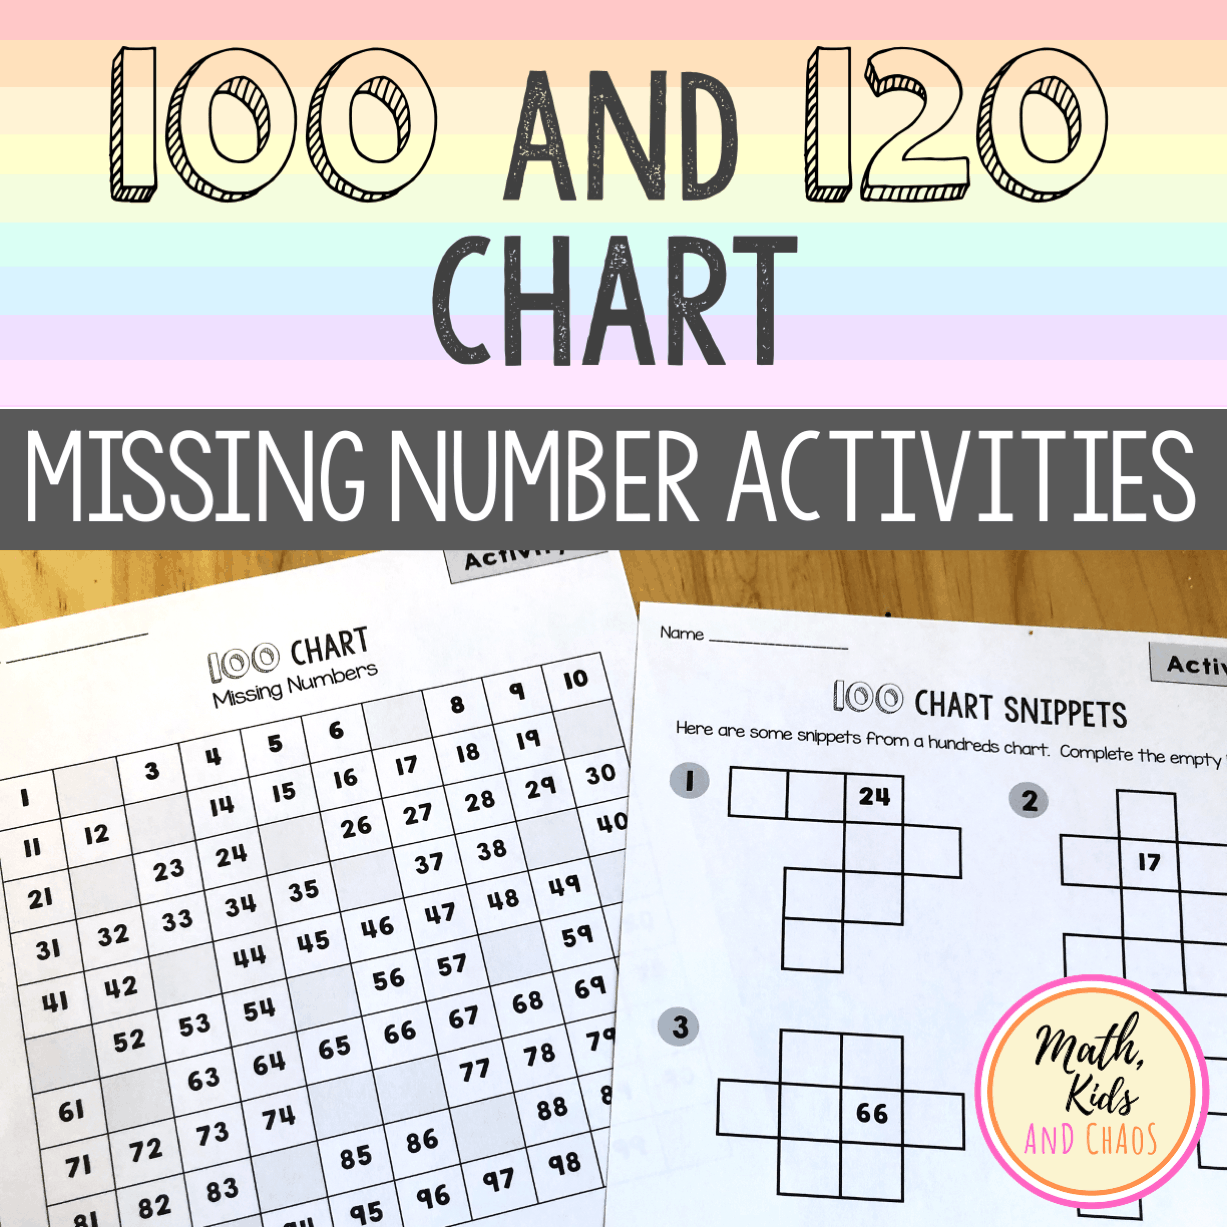 100 and 120 Chart: Missing Number Activities (product cover)